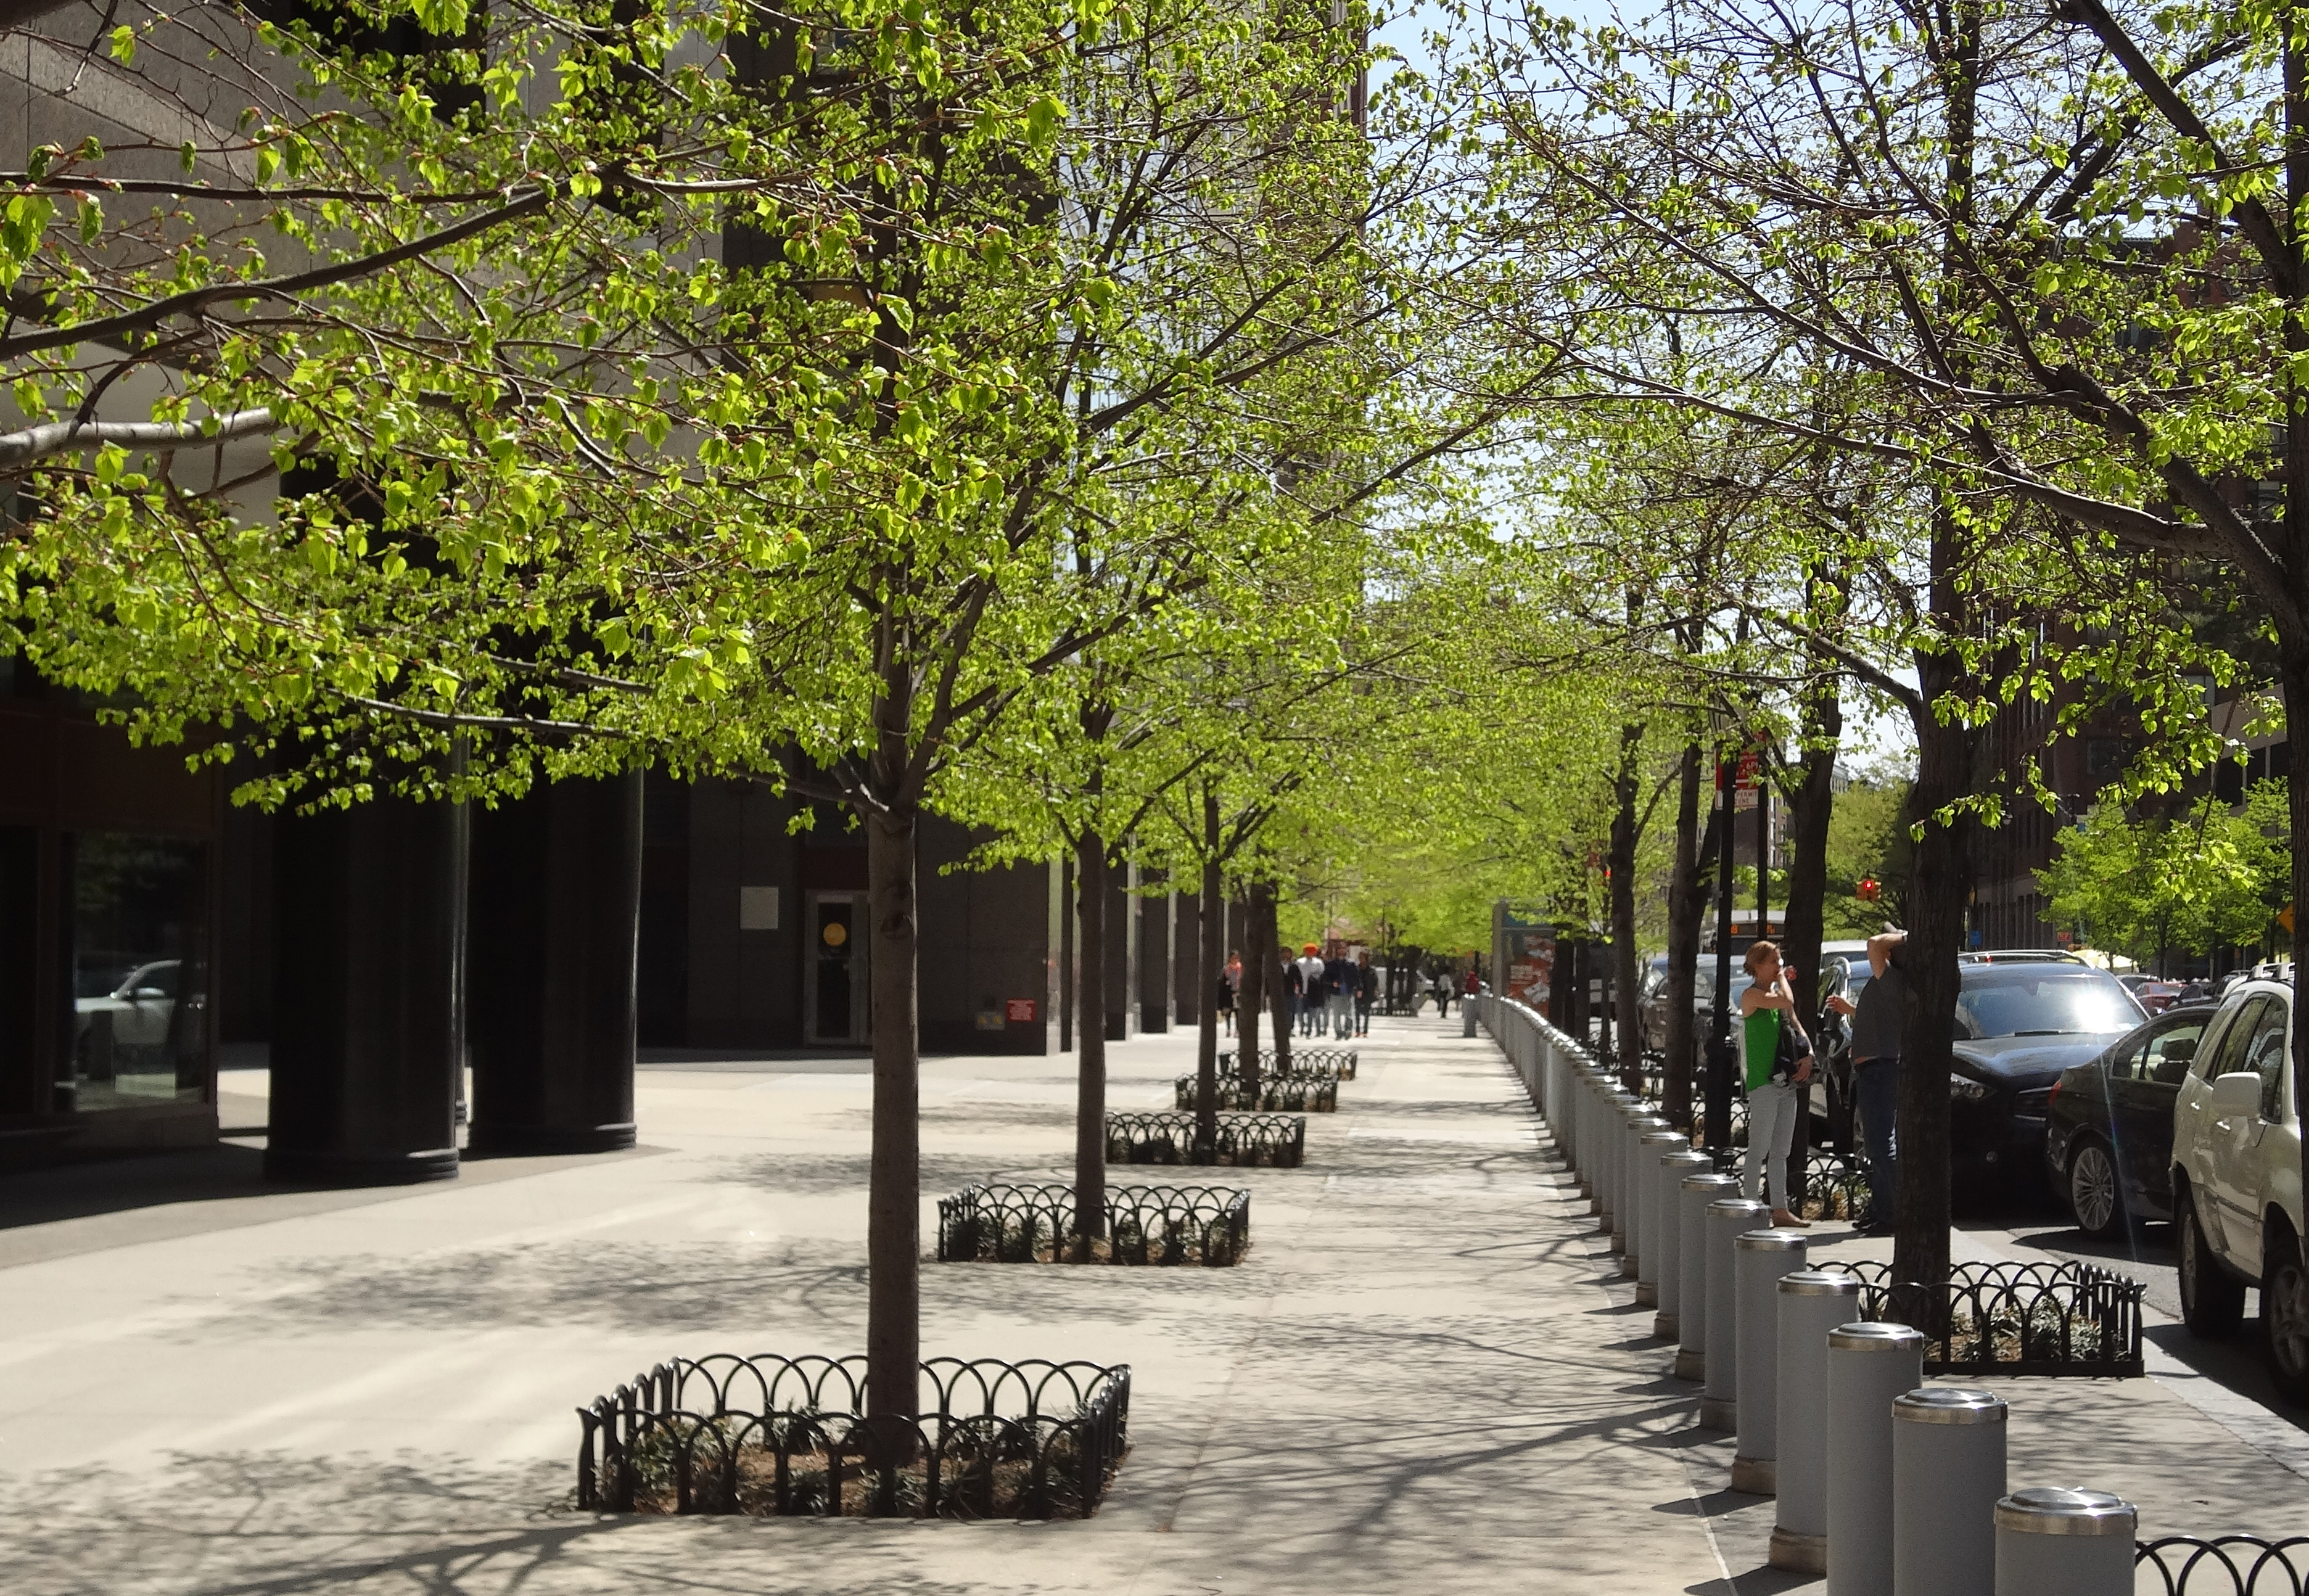 South End trees